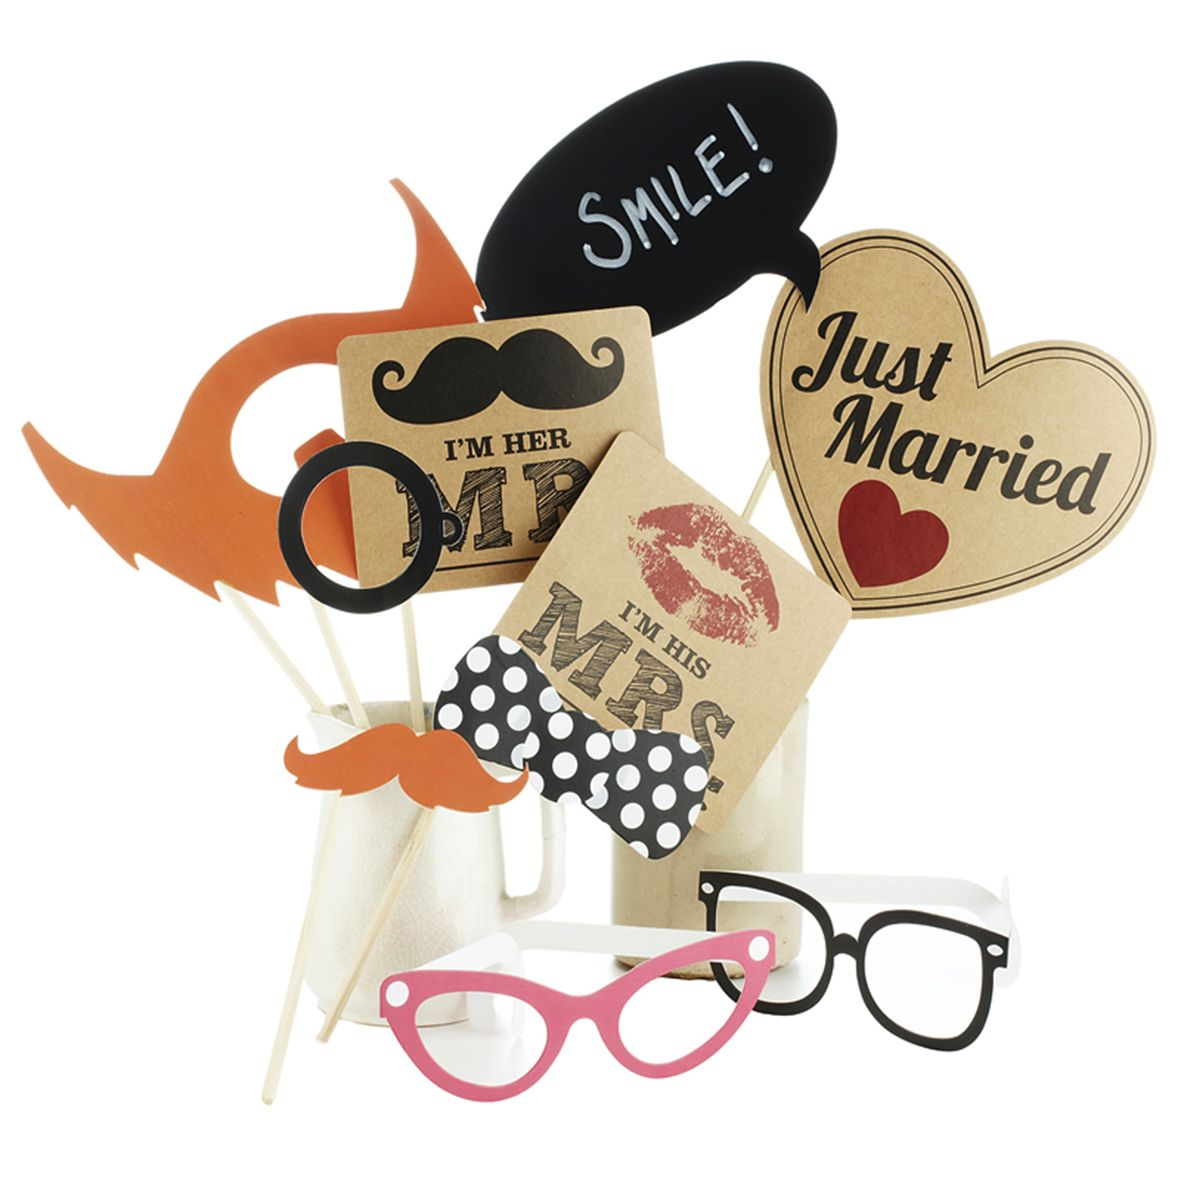 Photo Booth Props Kit category image